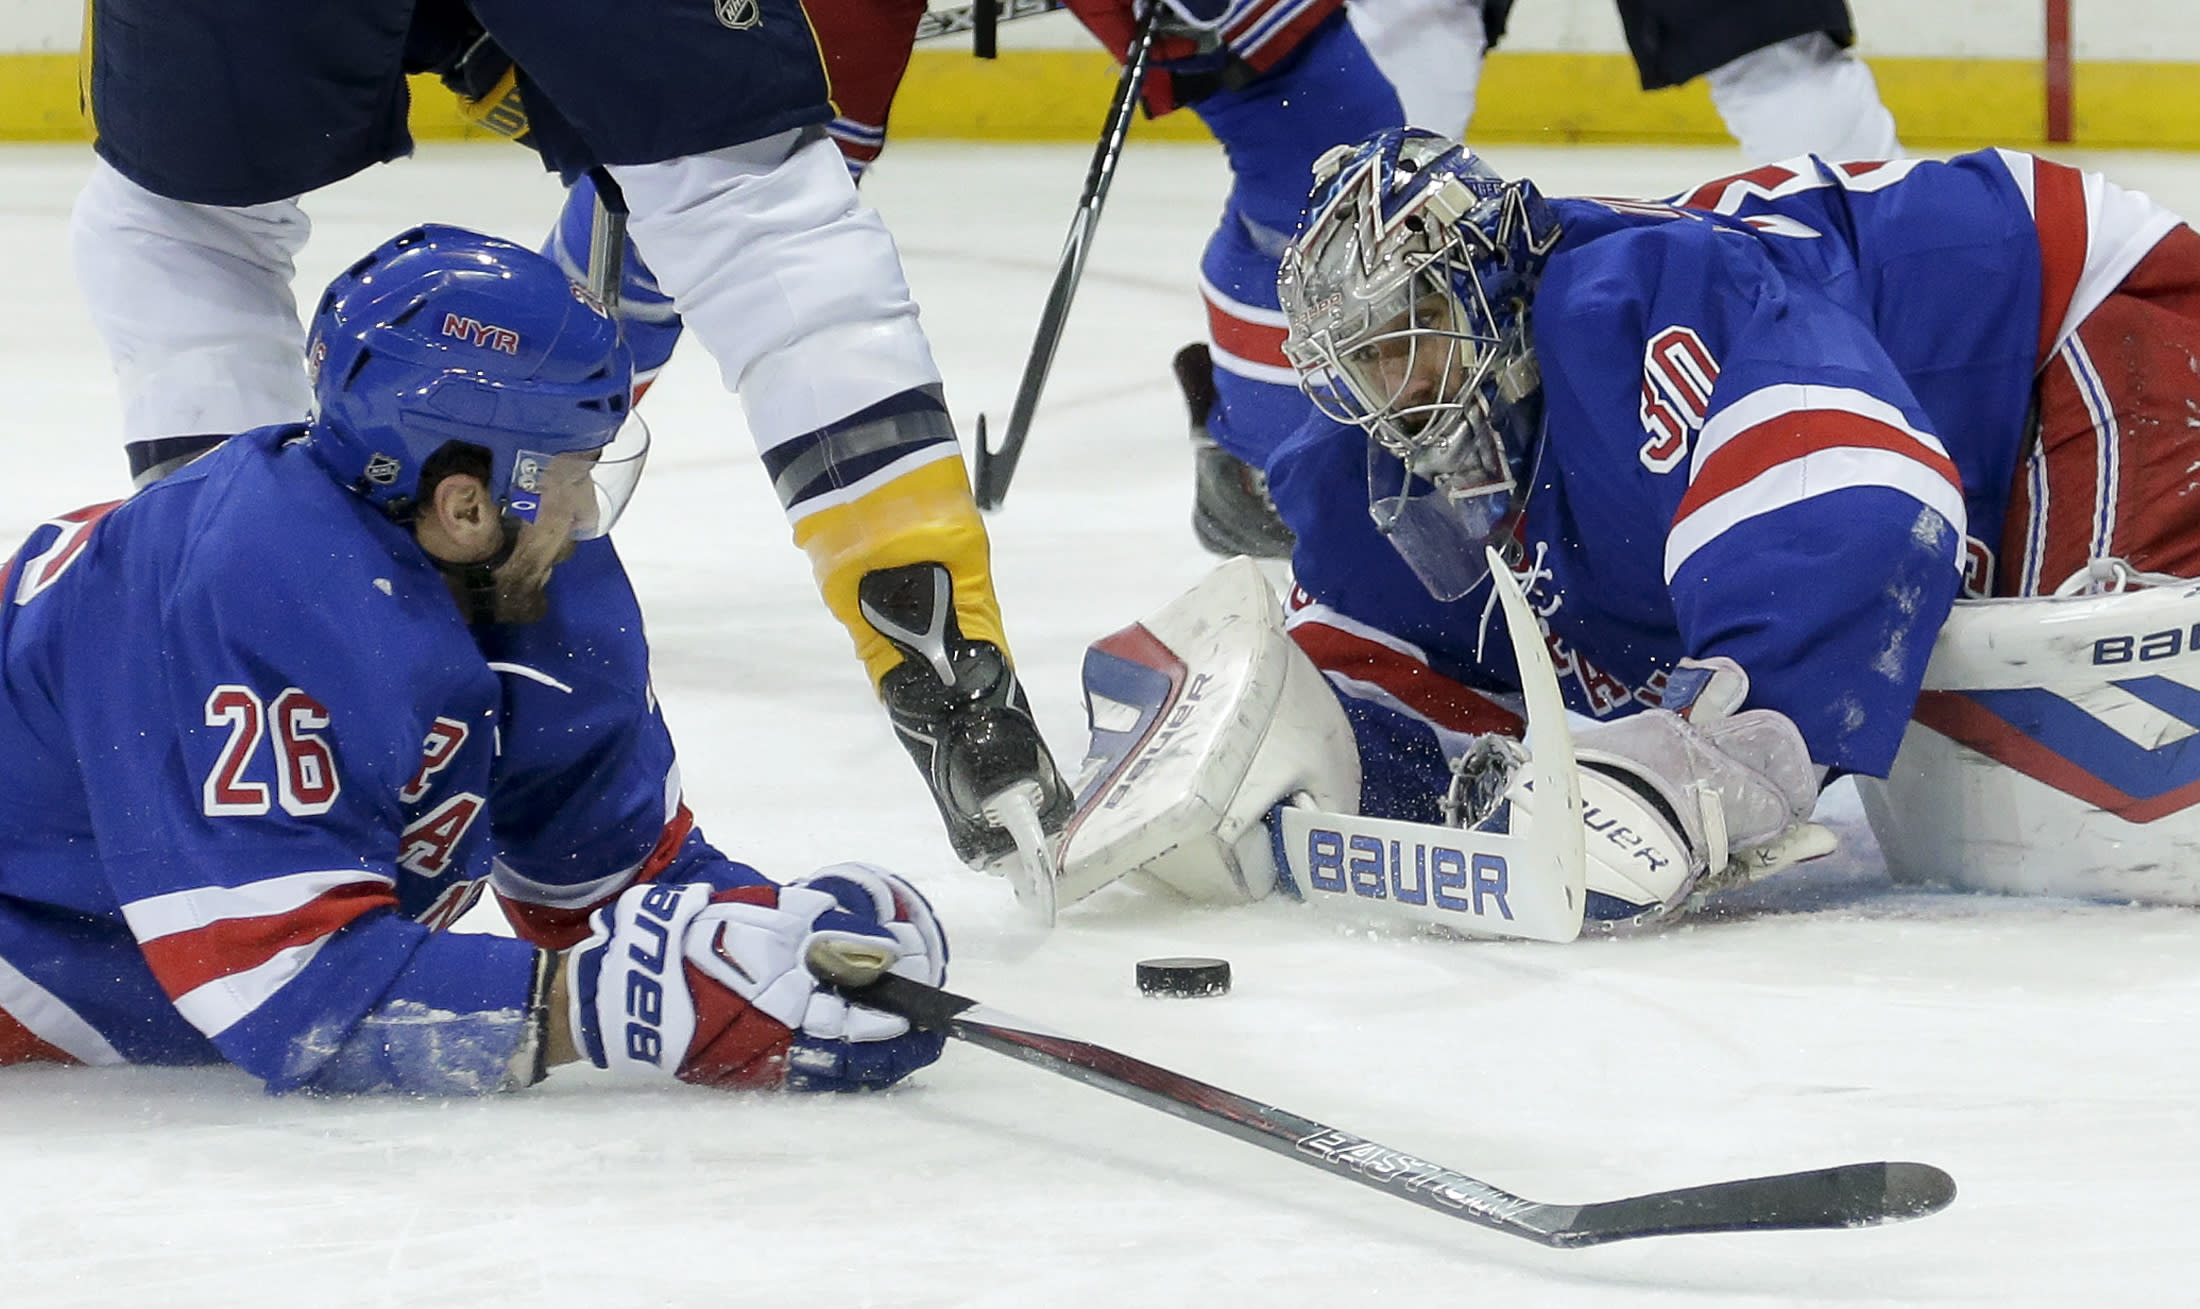 Lundqvist makes 31 saves, Rangers blank Predators 3-0